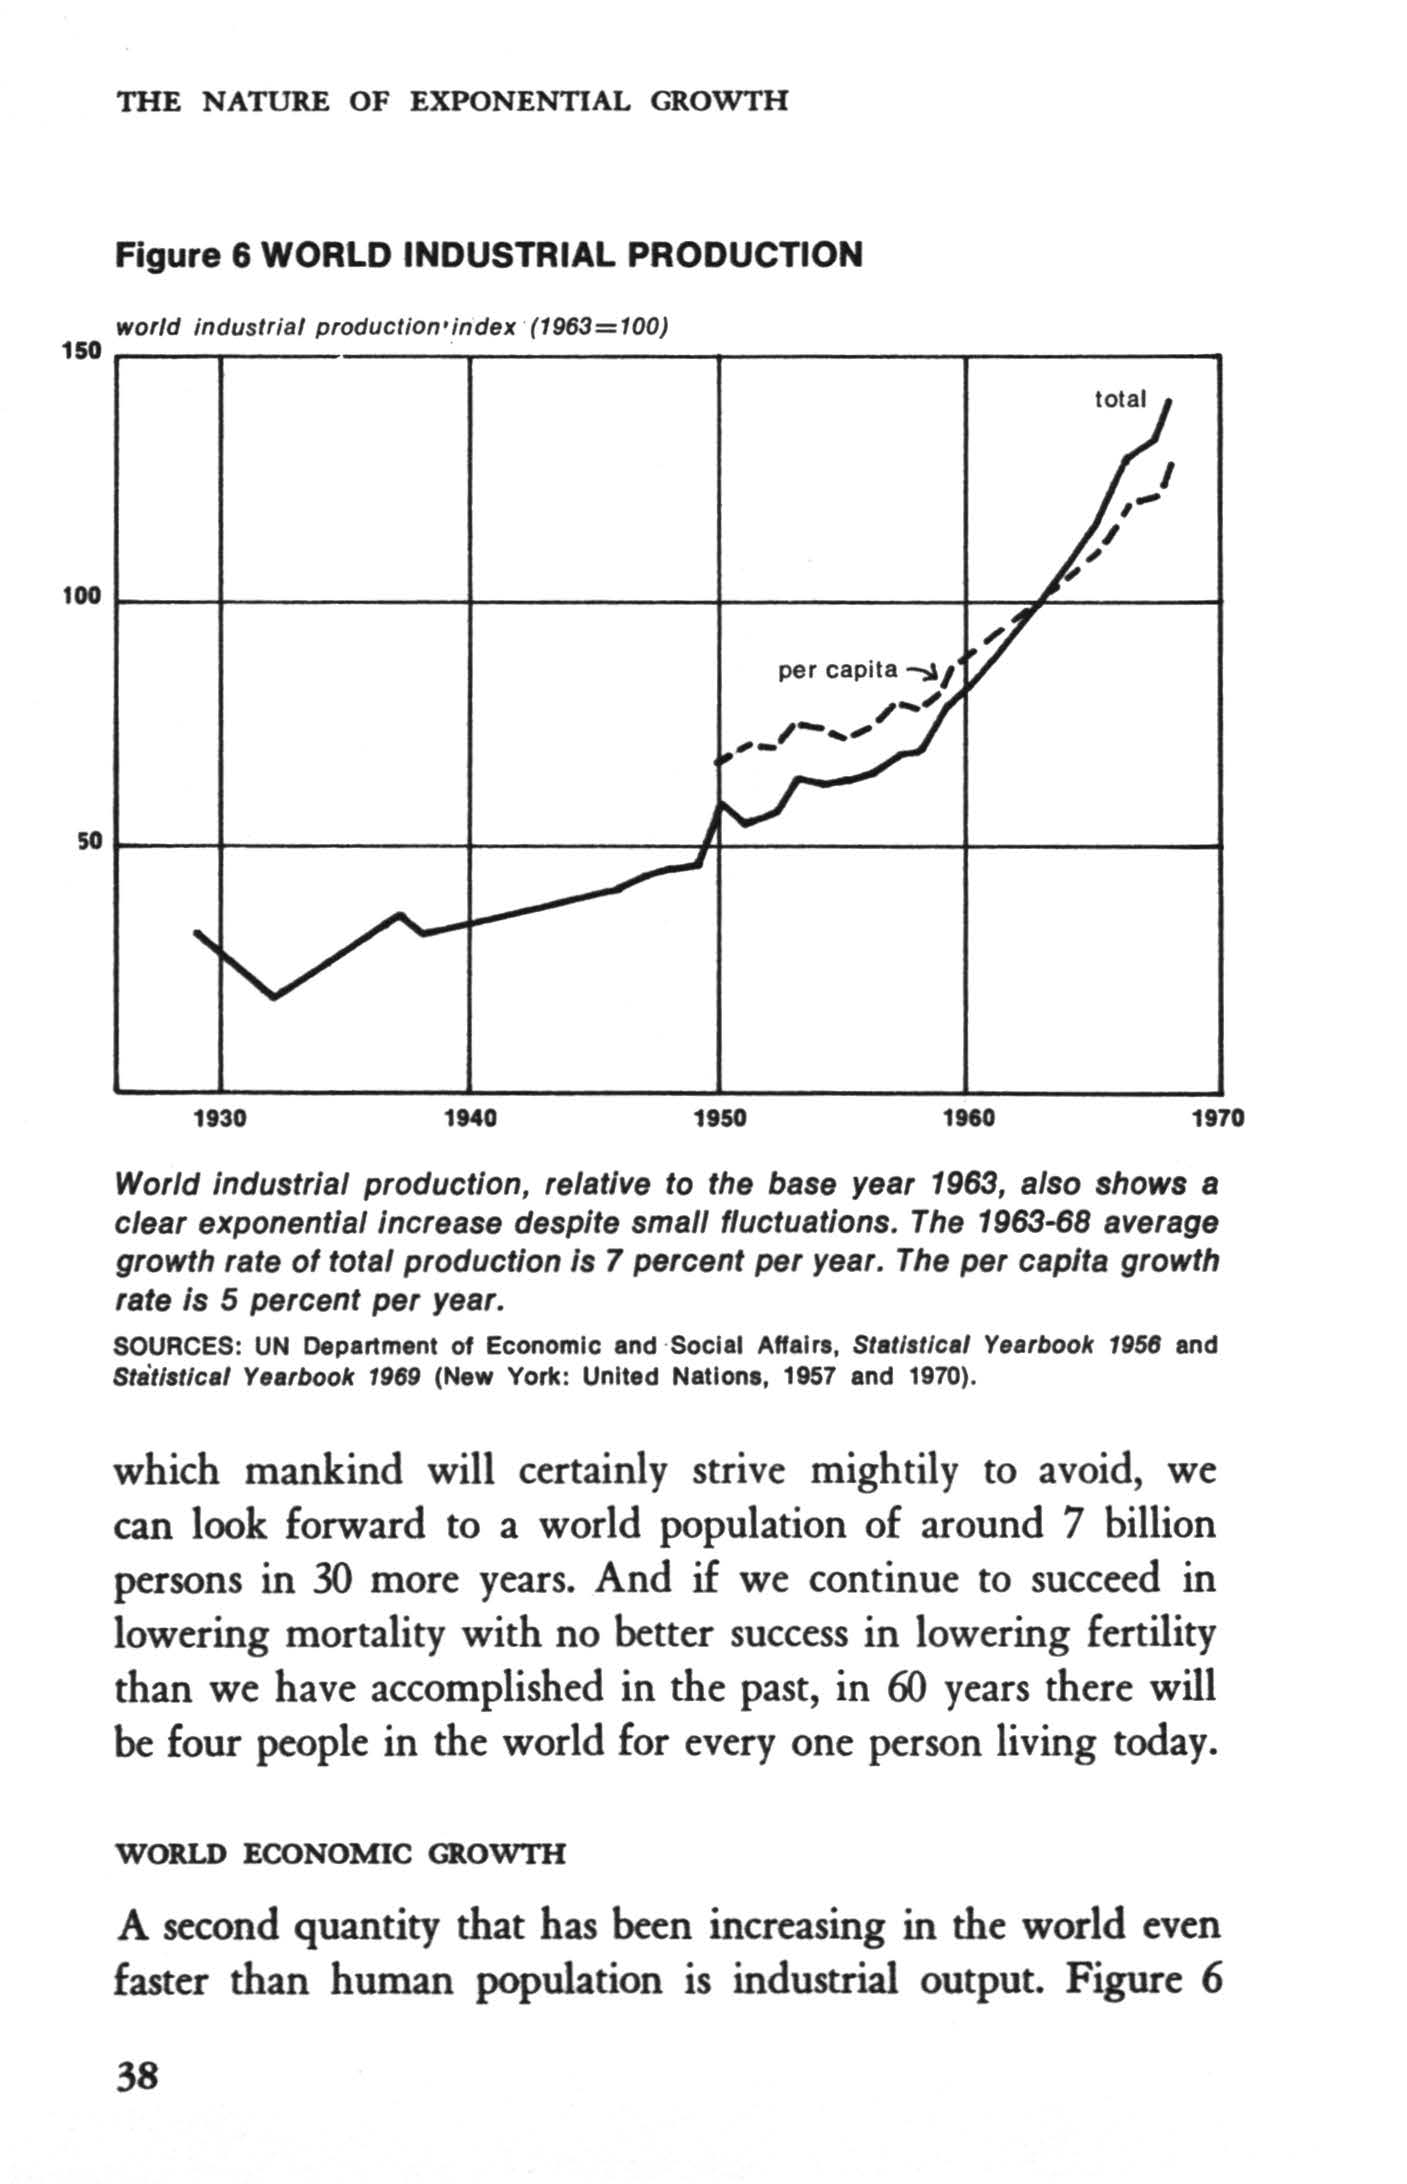 THE NATURE OF EXPONENTAL GROWTH Figure 6 WORLD NDUSTRAL PRODUCTON world industrial production index (1963=100) 1130 11140 18H 11160 1870 World industrial production, relative to the base year 1963,